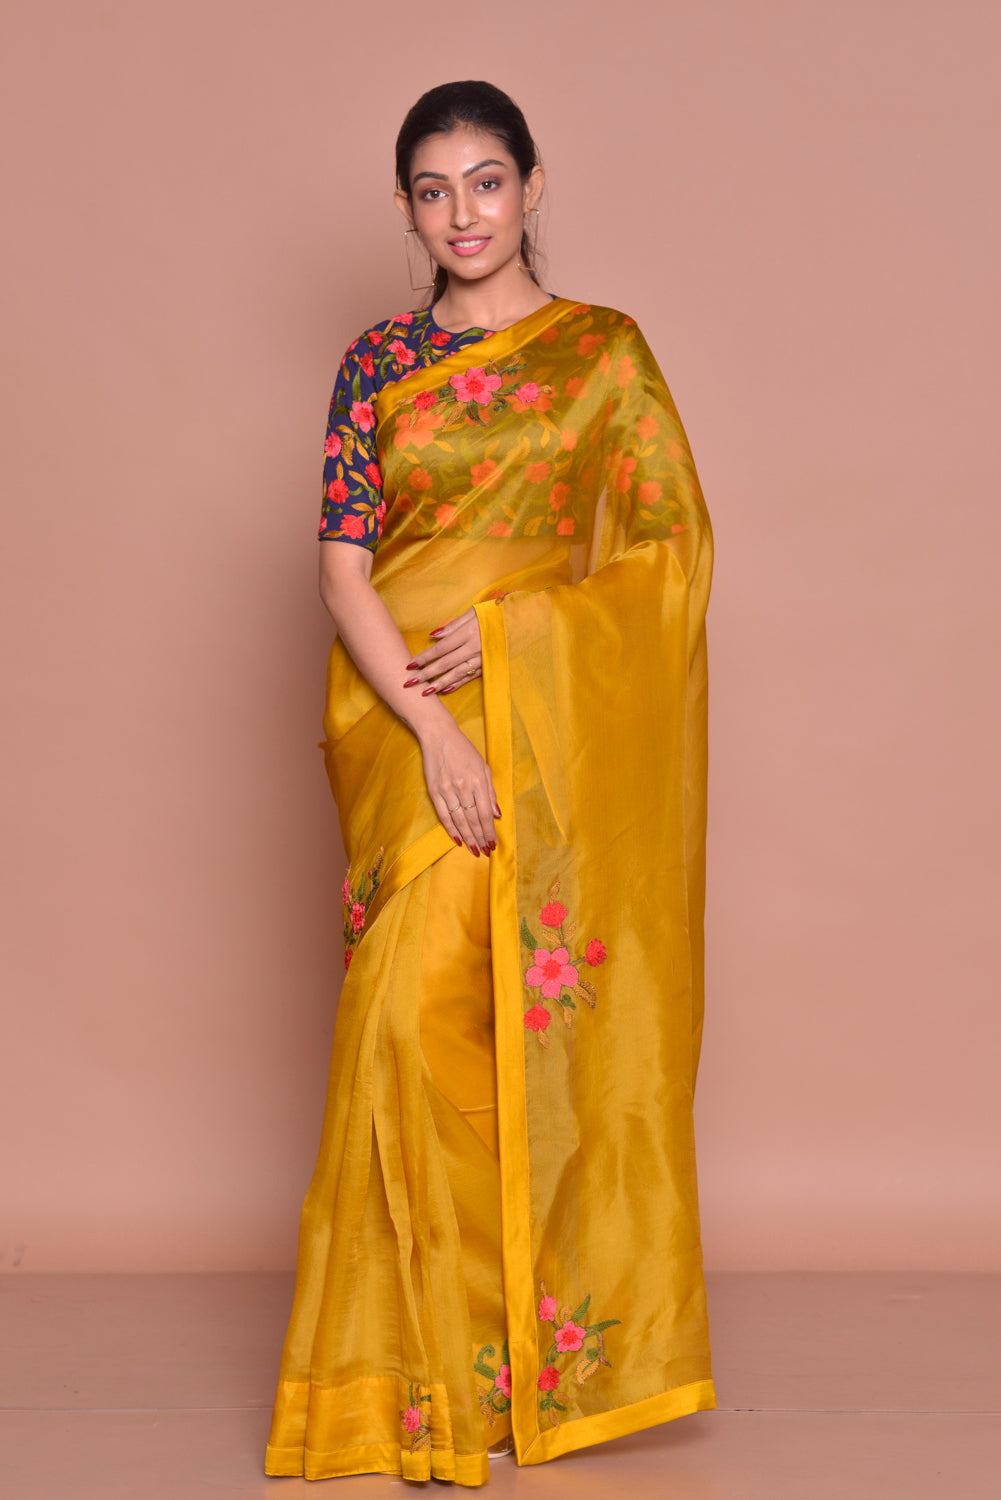 Buy beautiful mustard embroidered organza saree online in USA with blue floral saree blouse. Set ethnic fashion goals with exquisite silk sarees with blouse, Banarasi sarees, Kanchipuram saris from Pure Elegance Indian luxury clothing store in USA.-full view